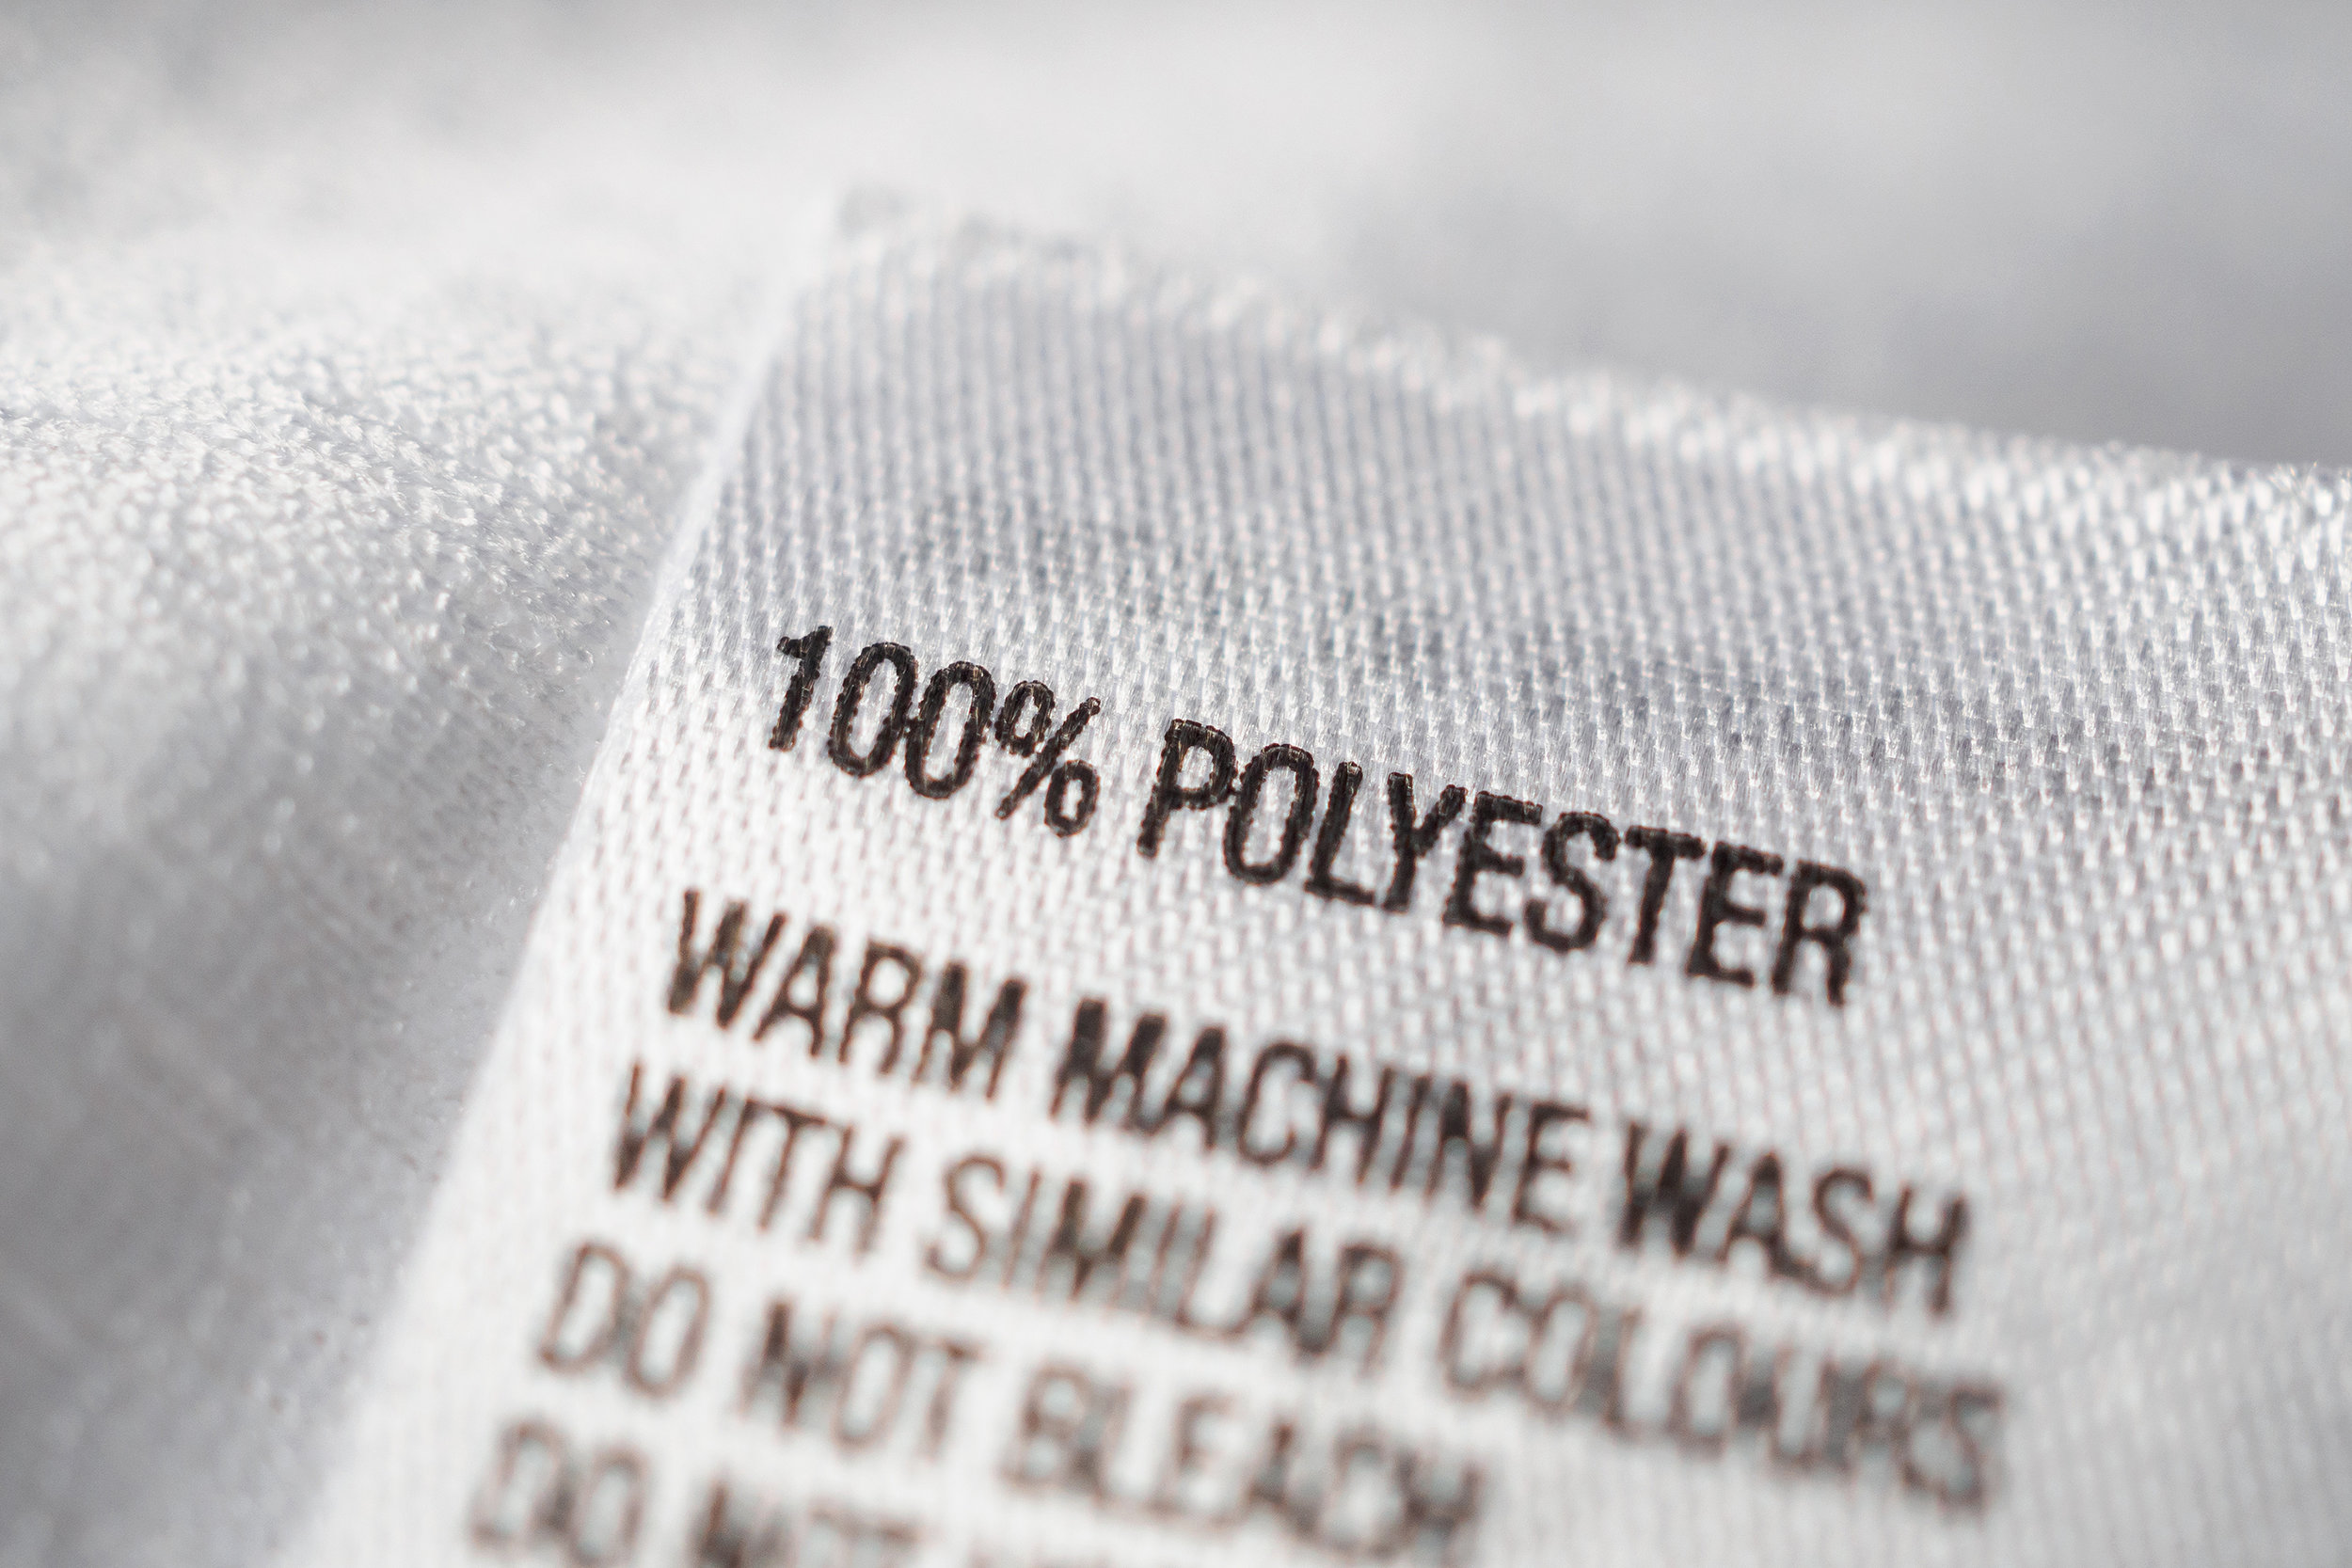 """The plastic in our clothes - Friends of the Earth are calling on the fashion industry to do more to tackle plastic pollution, as new figures highlight that the sector is a """"significant contribution"""" to the problem.The environmental campaign group states clothes washing in the UK is estimated to generate around 4,000 tonnes of plastic microfibre pollution every year, of which 1,600 tonnes could be ending up in our rivers and estuaries.Full article here"""